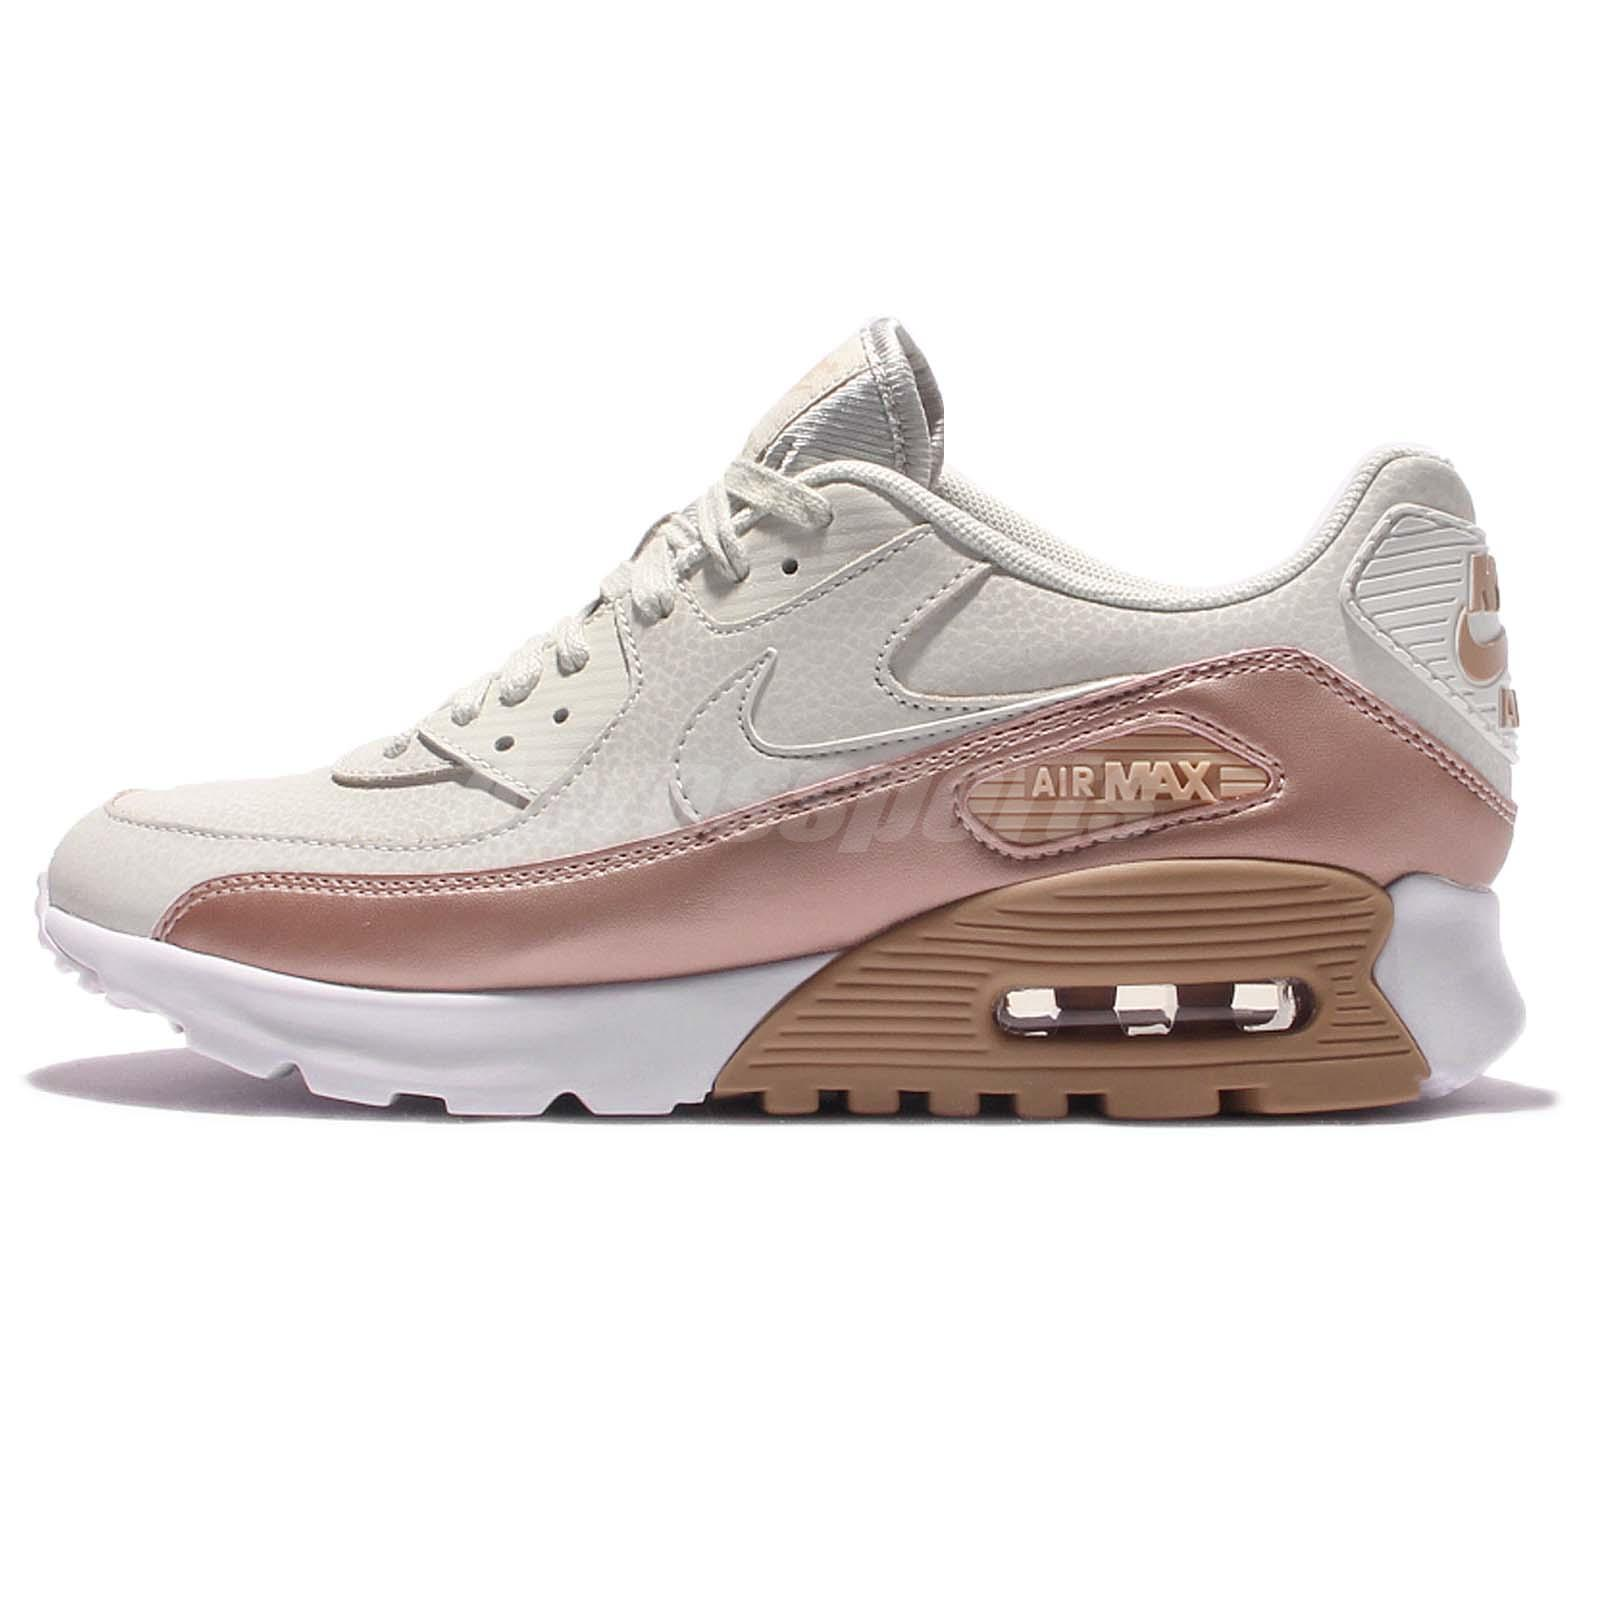 wmns nike air max 90 ultra se rose gold bronze womens. Black Bedroom Furniture Sets. Home Design Ideas